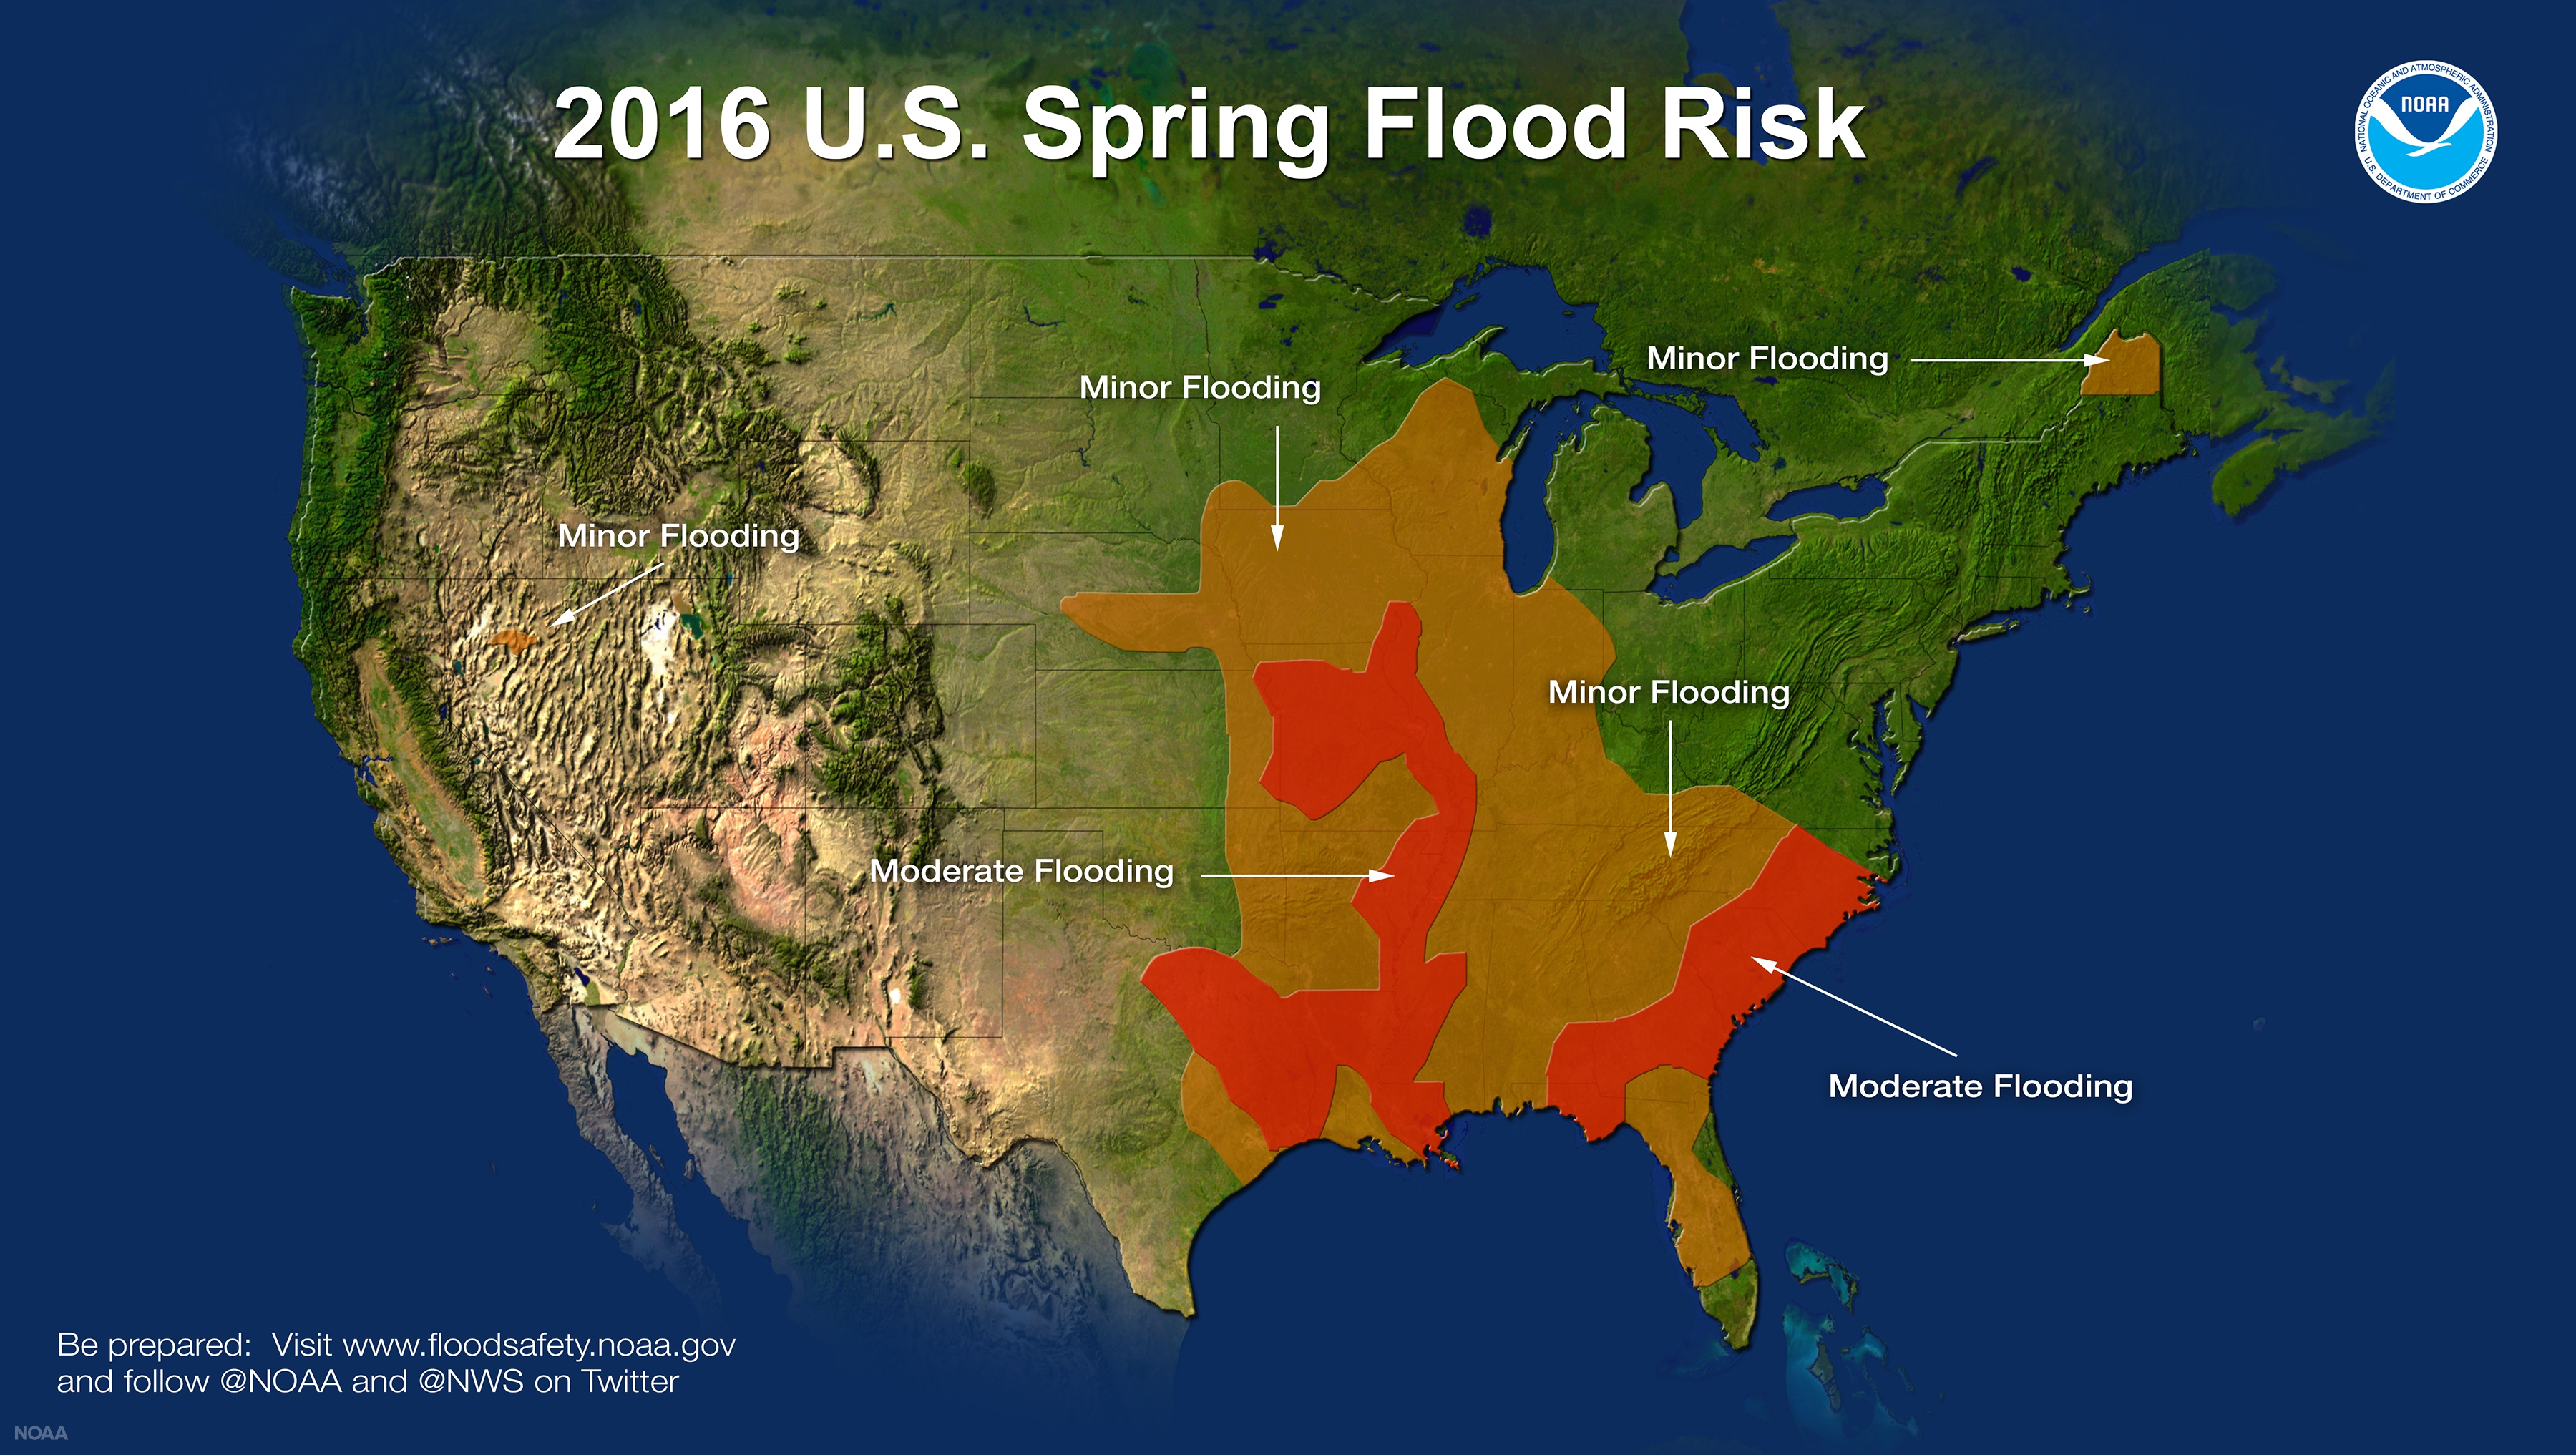 Luxury Idea Map Of Flooded Areas In Texas Mapping Coastal Flood Risk - Map Of Flooded Areas In Texas